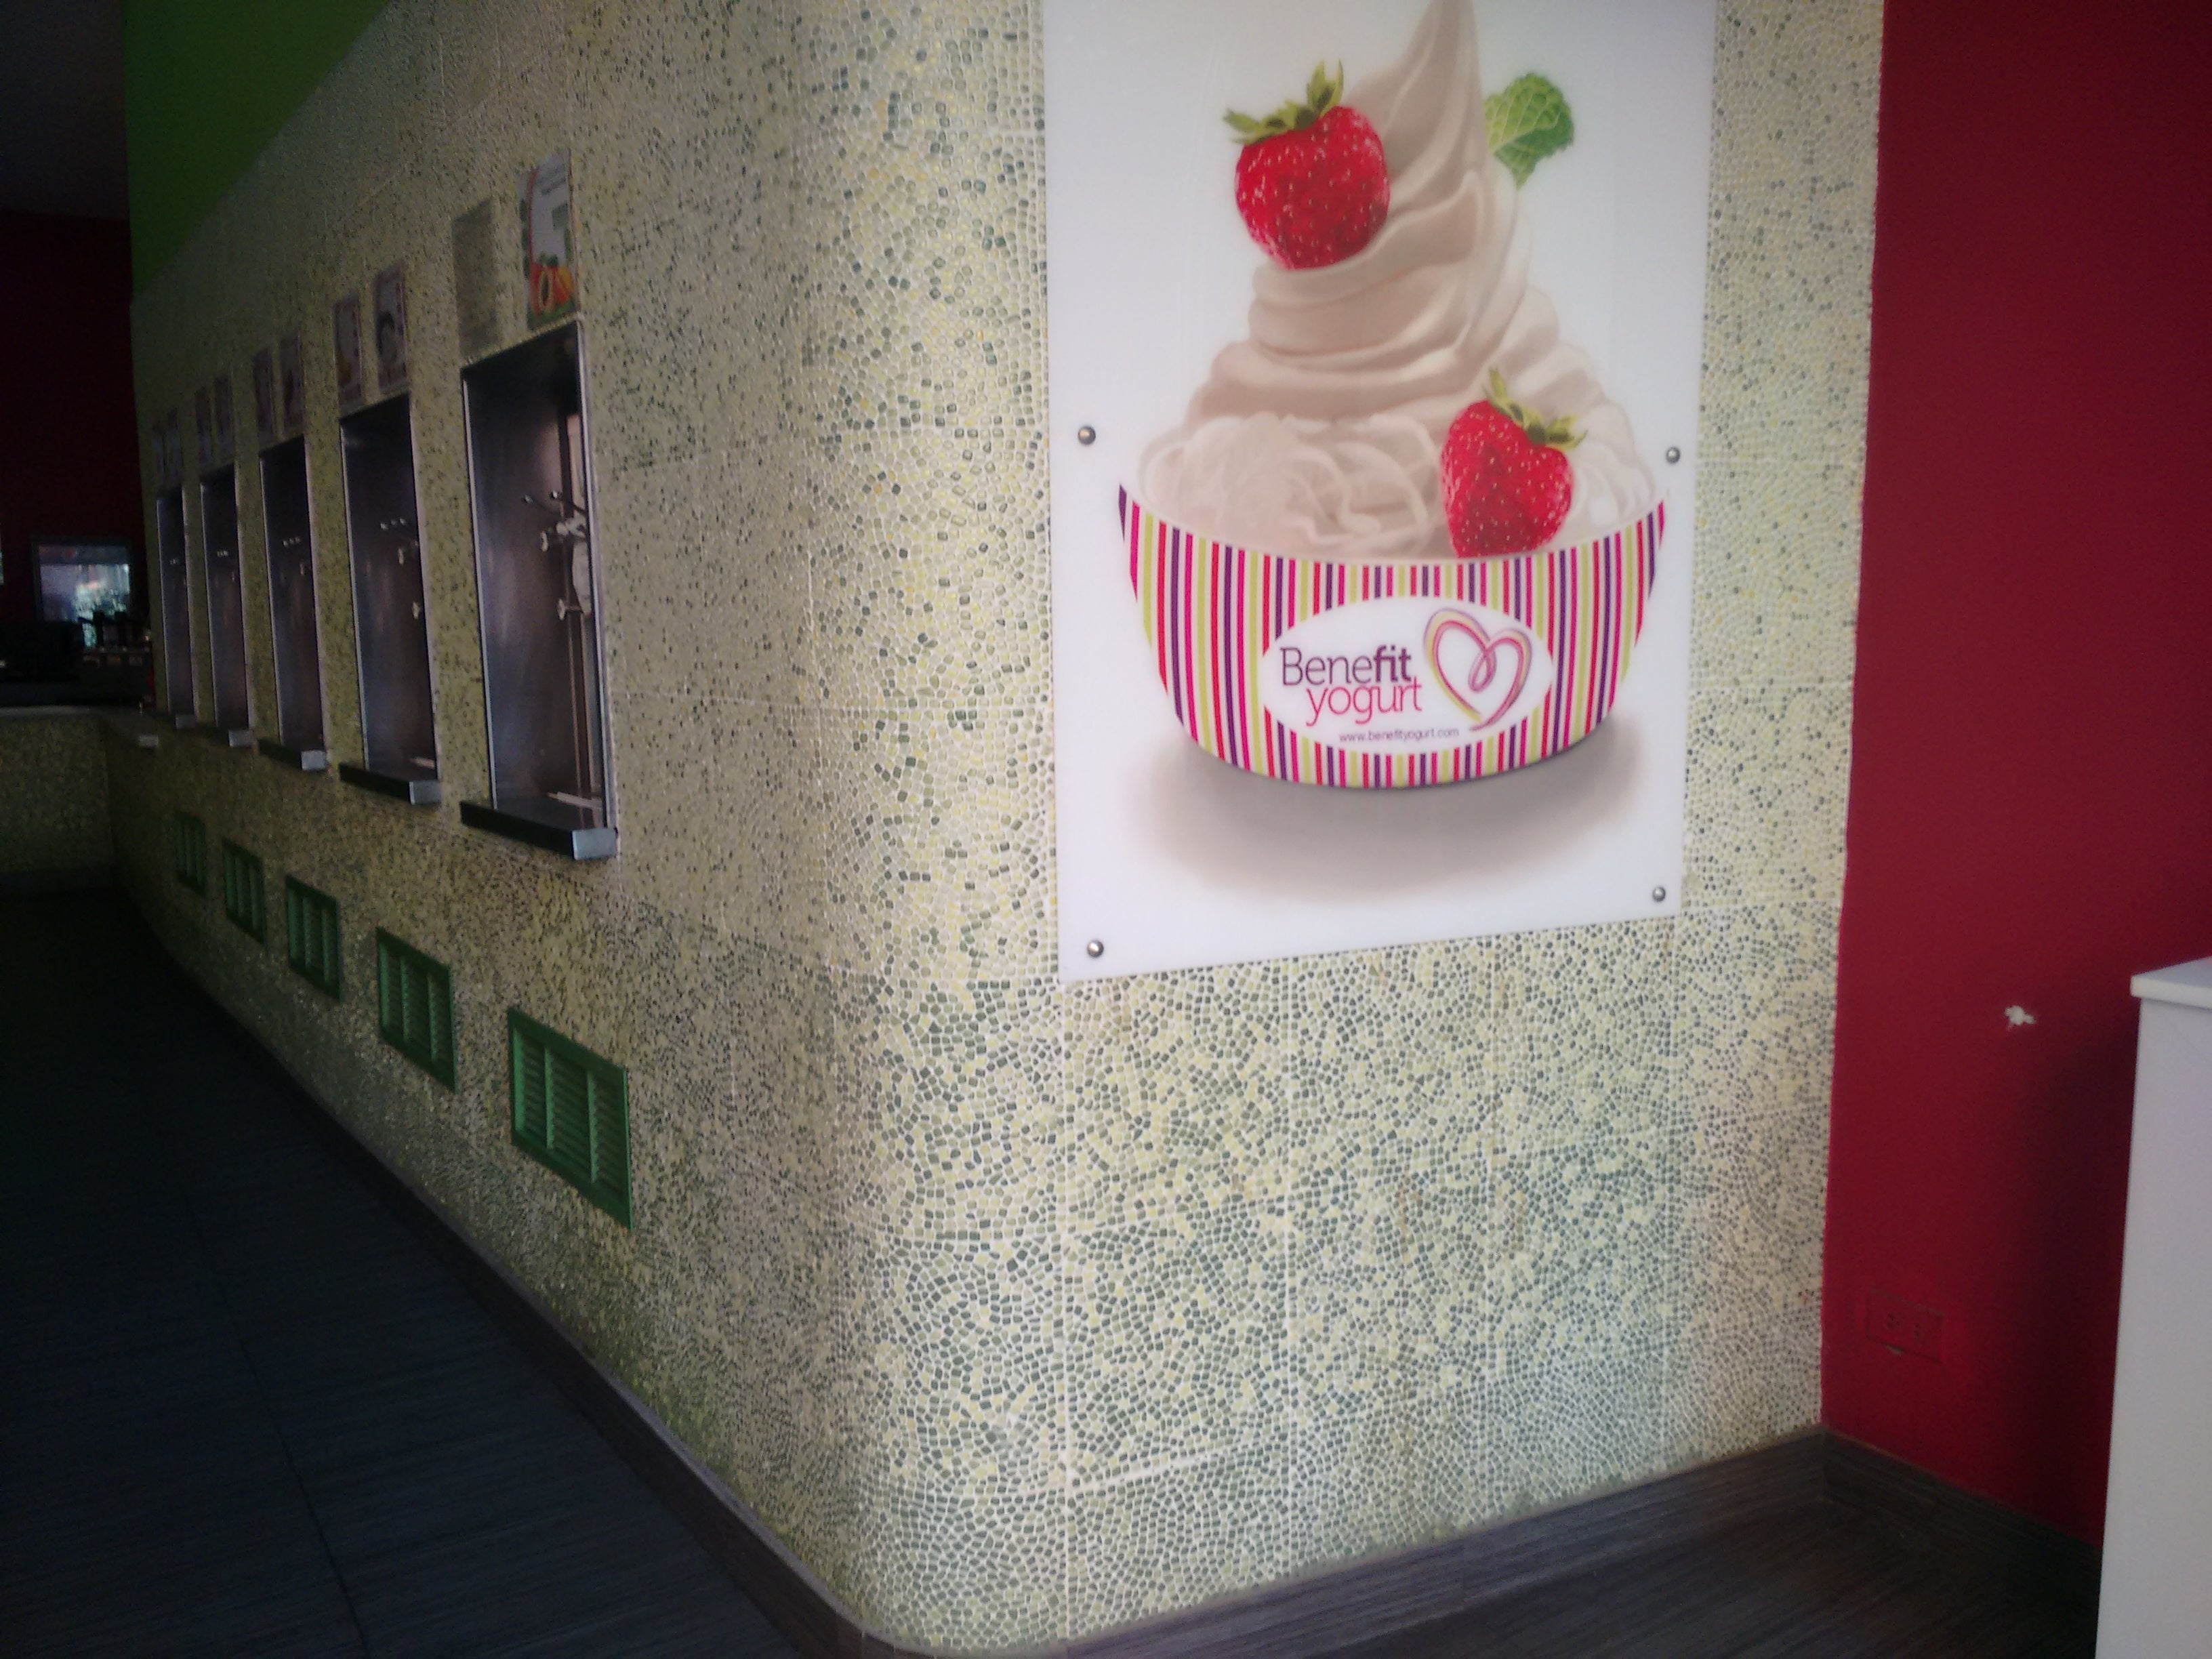 Interior Design in Benefil Yogurt